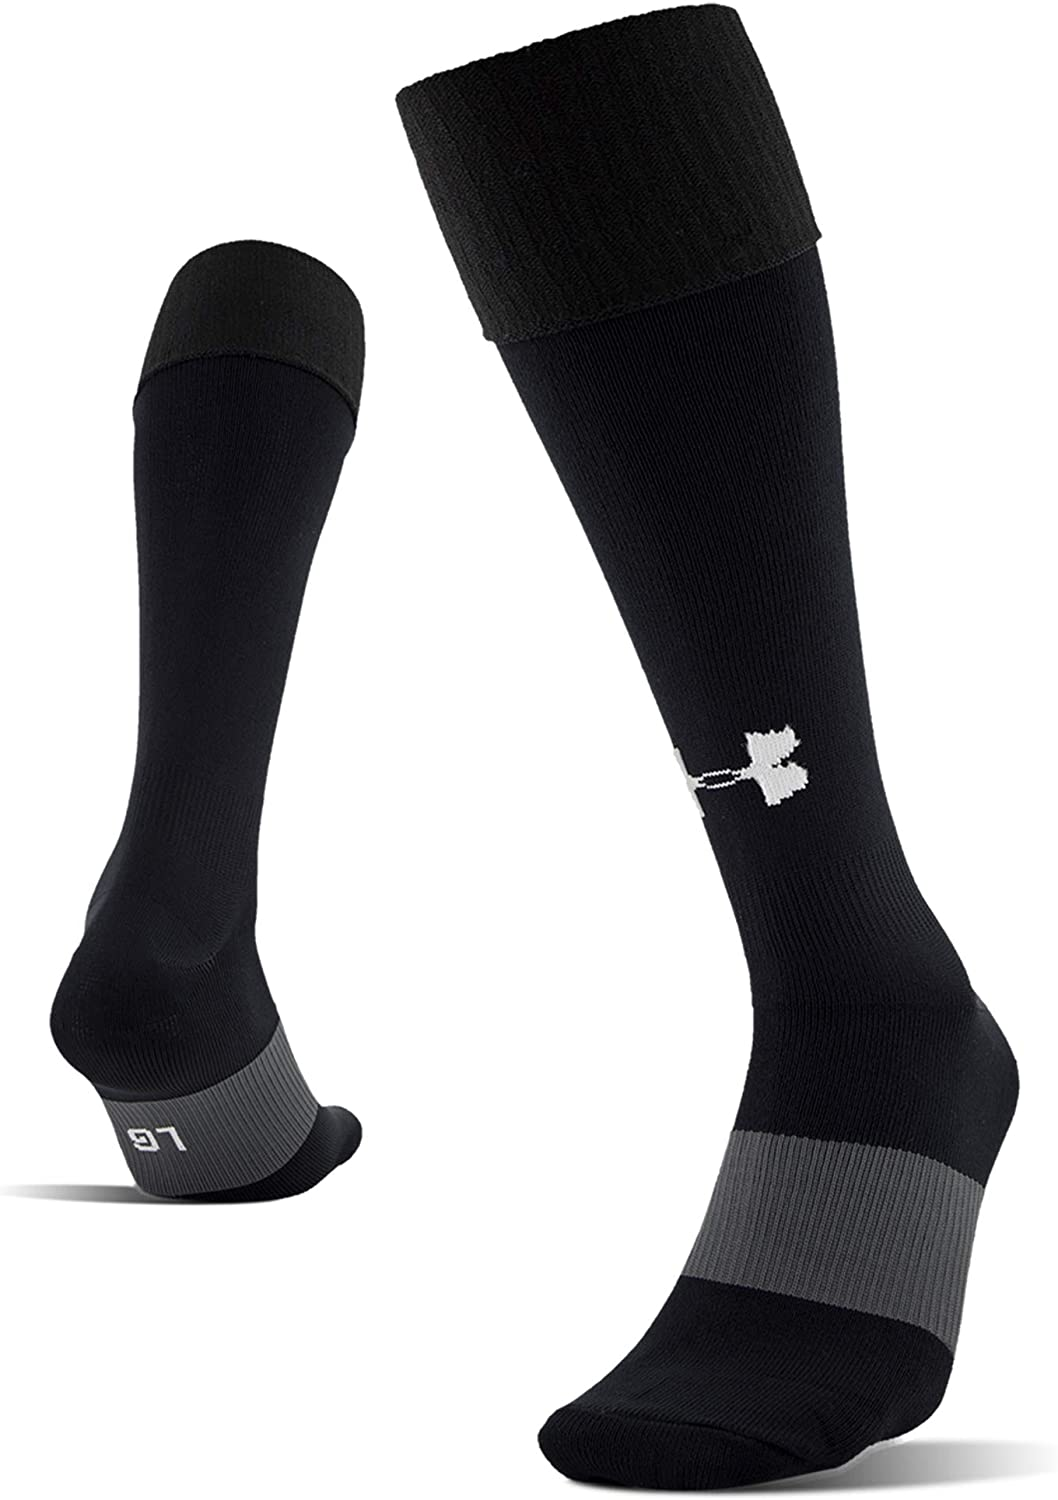 Under Armour Adult Soccer Over-The-Calf Socks, 1-Pair